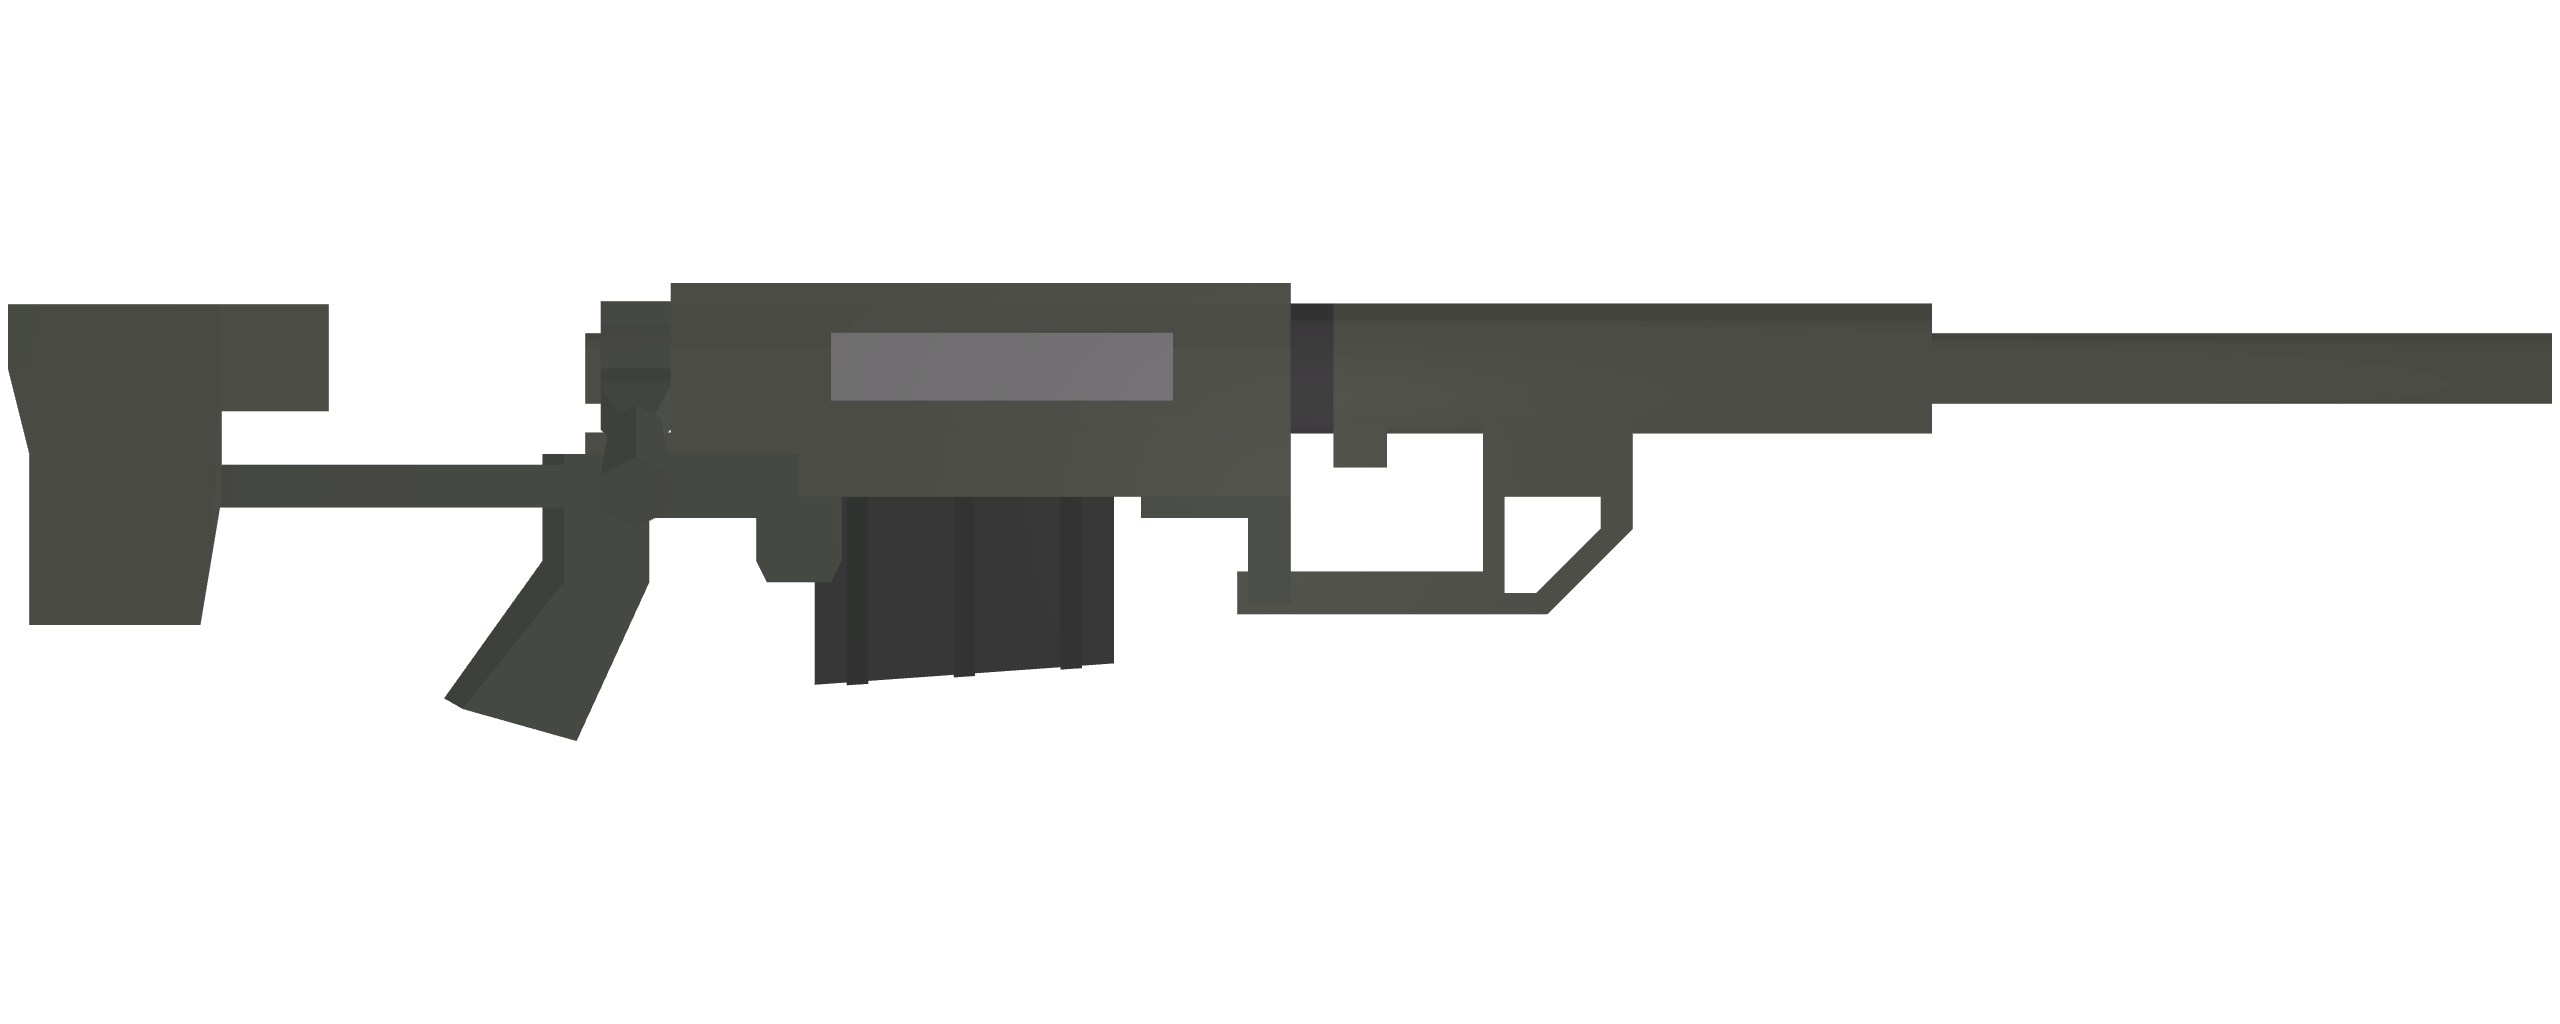 Unturned Uncreated Warfare Mods & All ID List + Attachments - USA Weapons - 9231A23